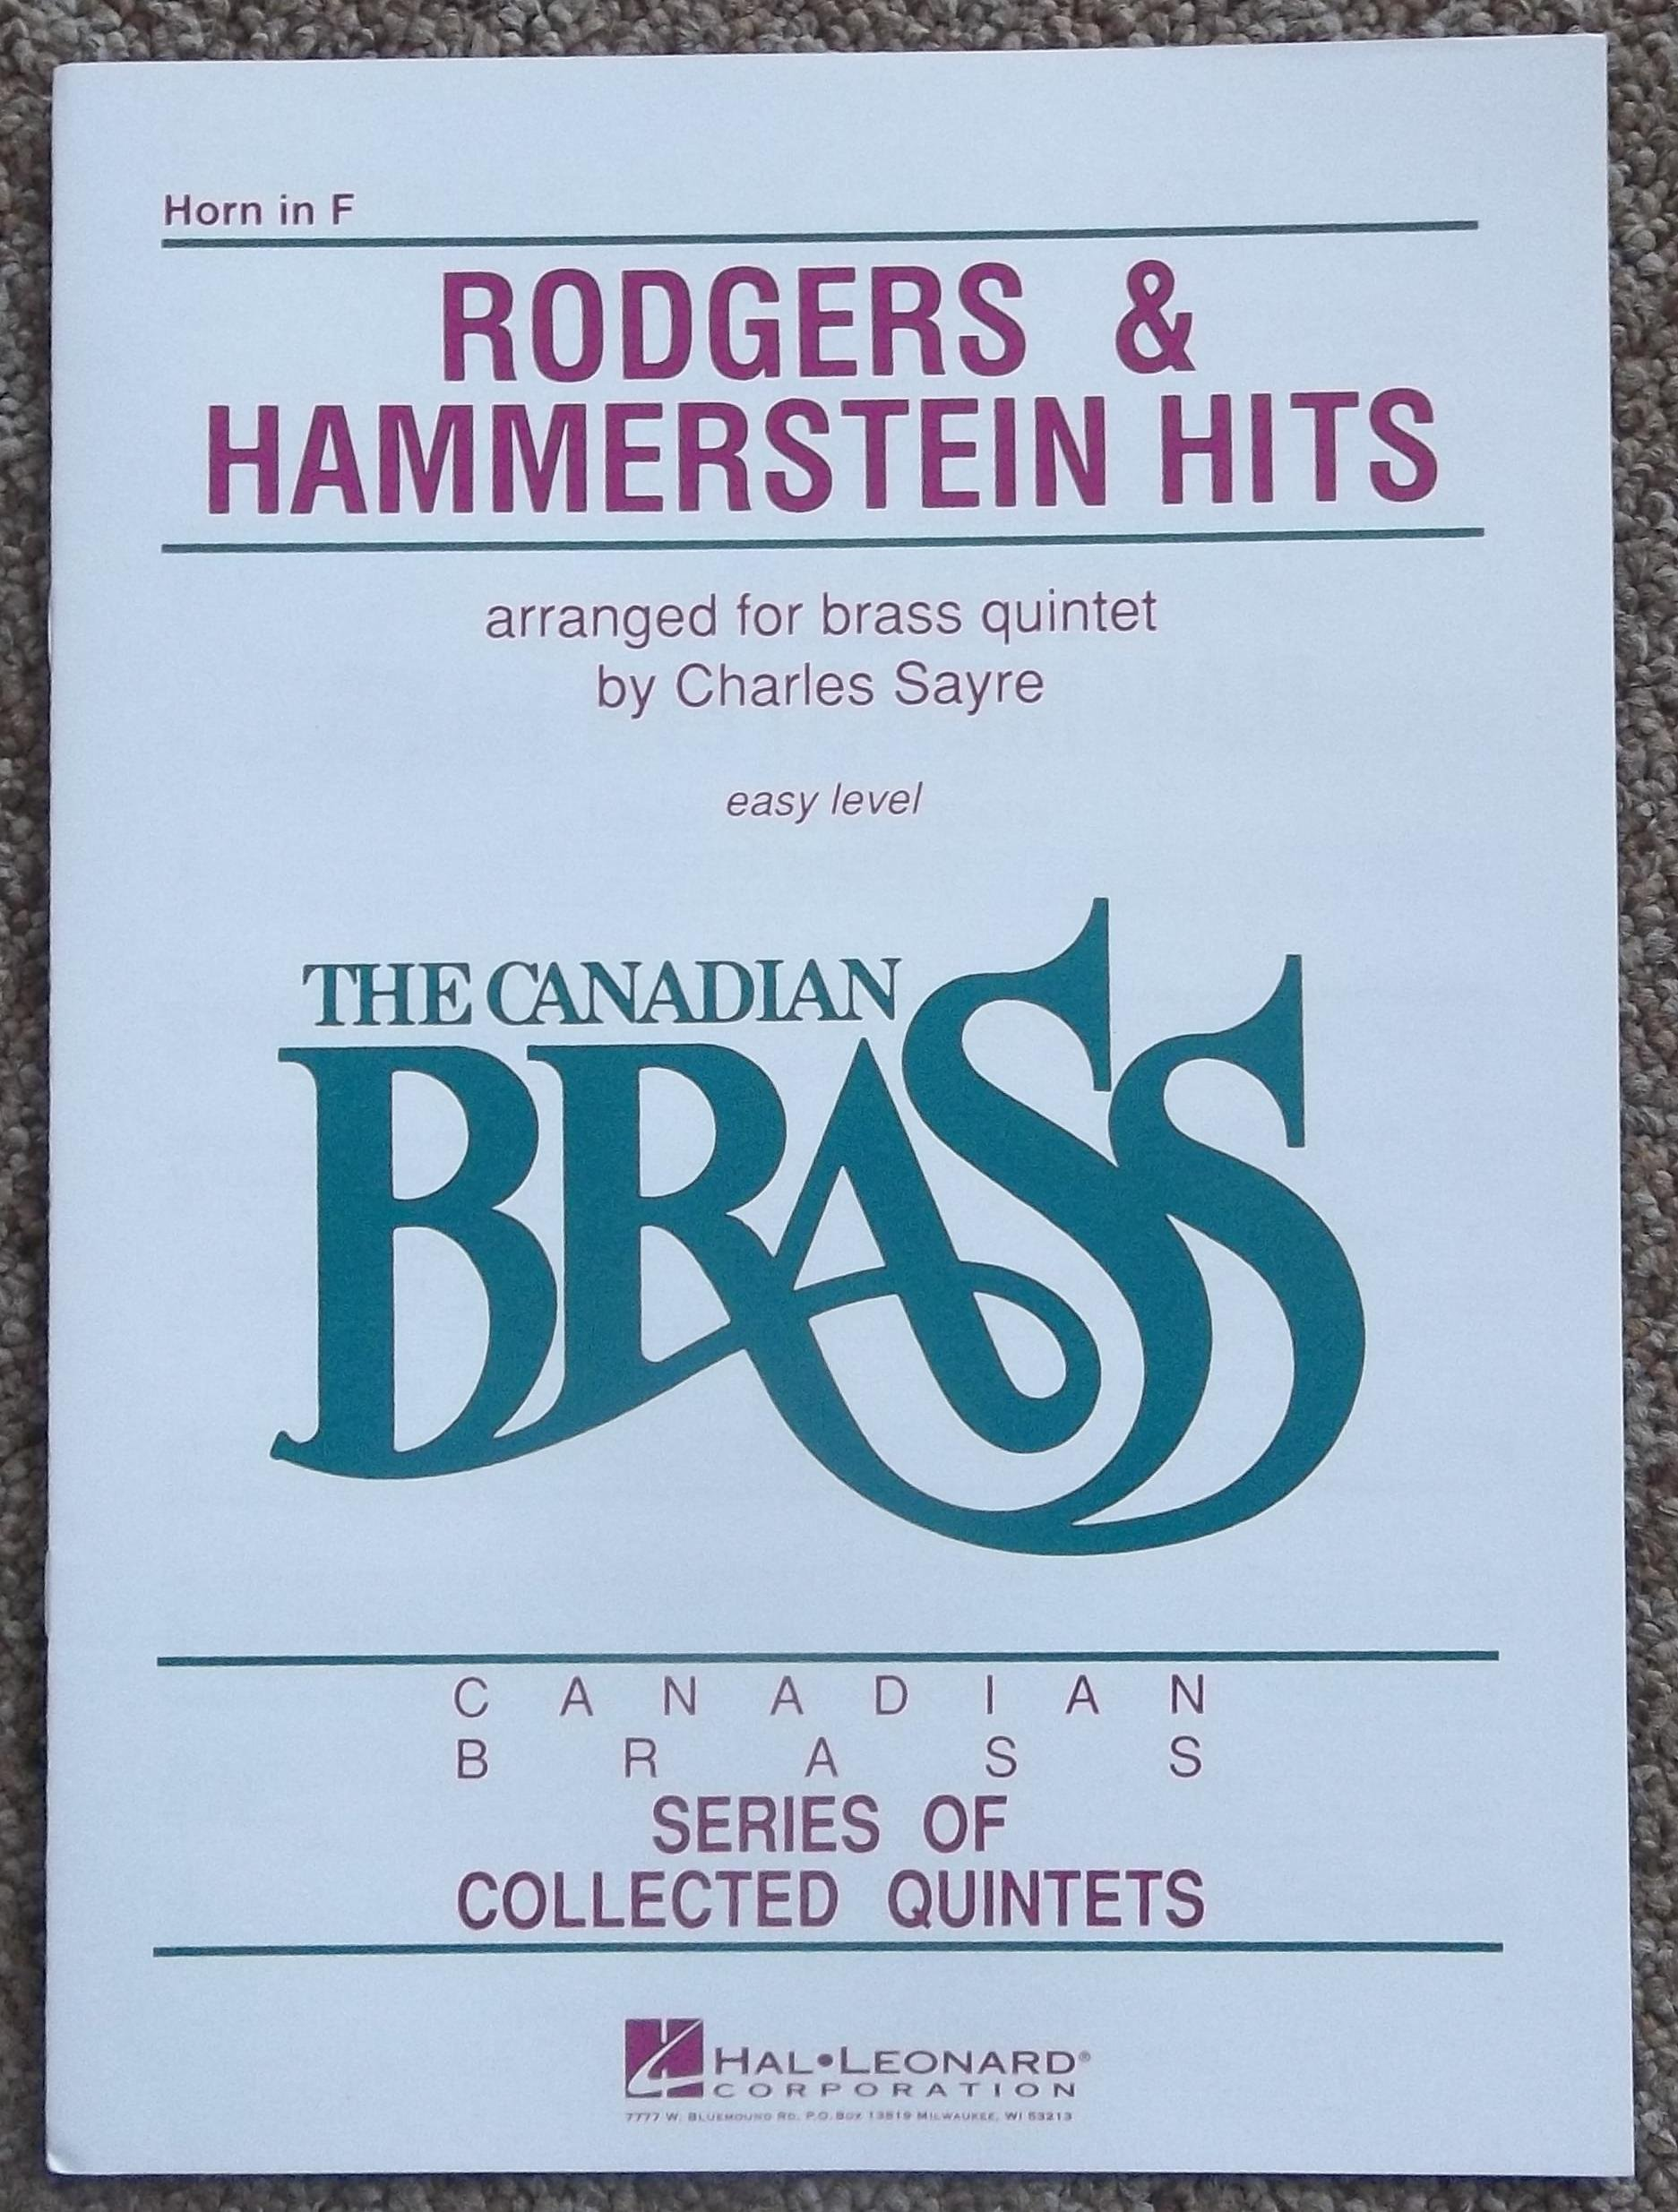 The Canadian Brass - Rodgers & Hammerstein Hits French Horn